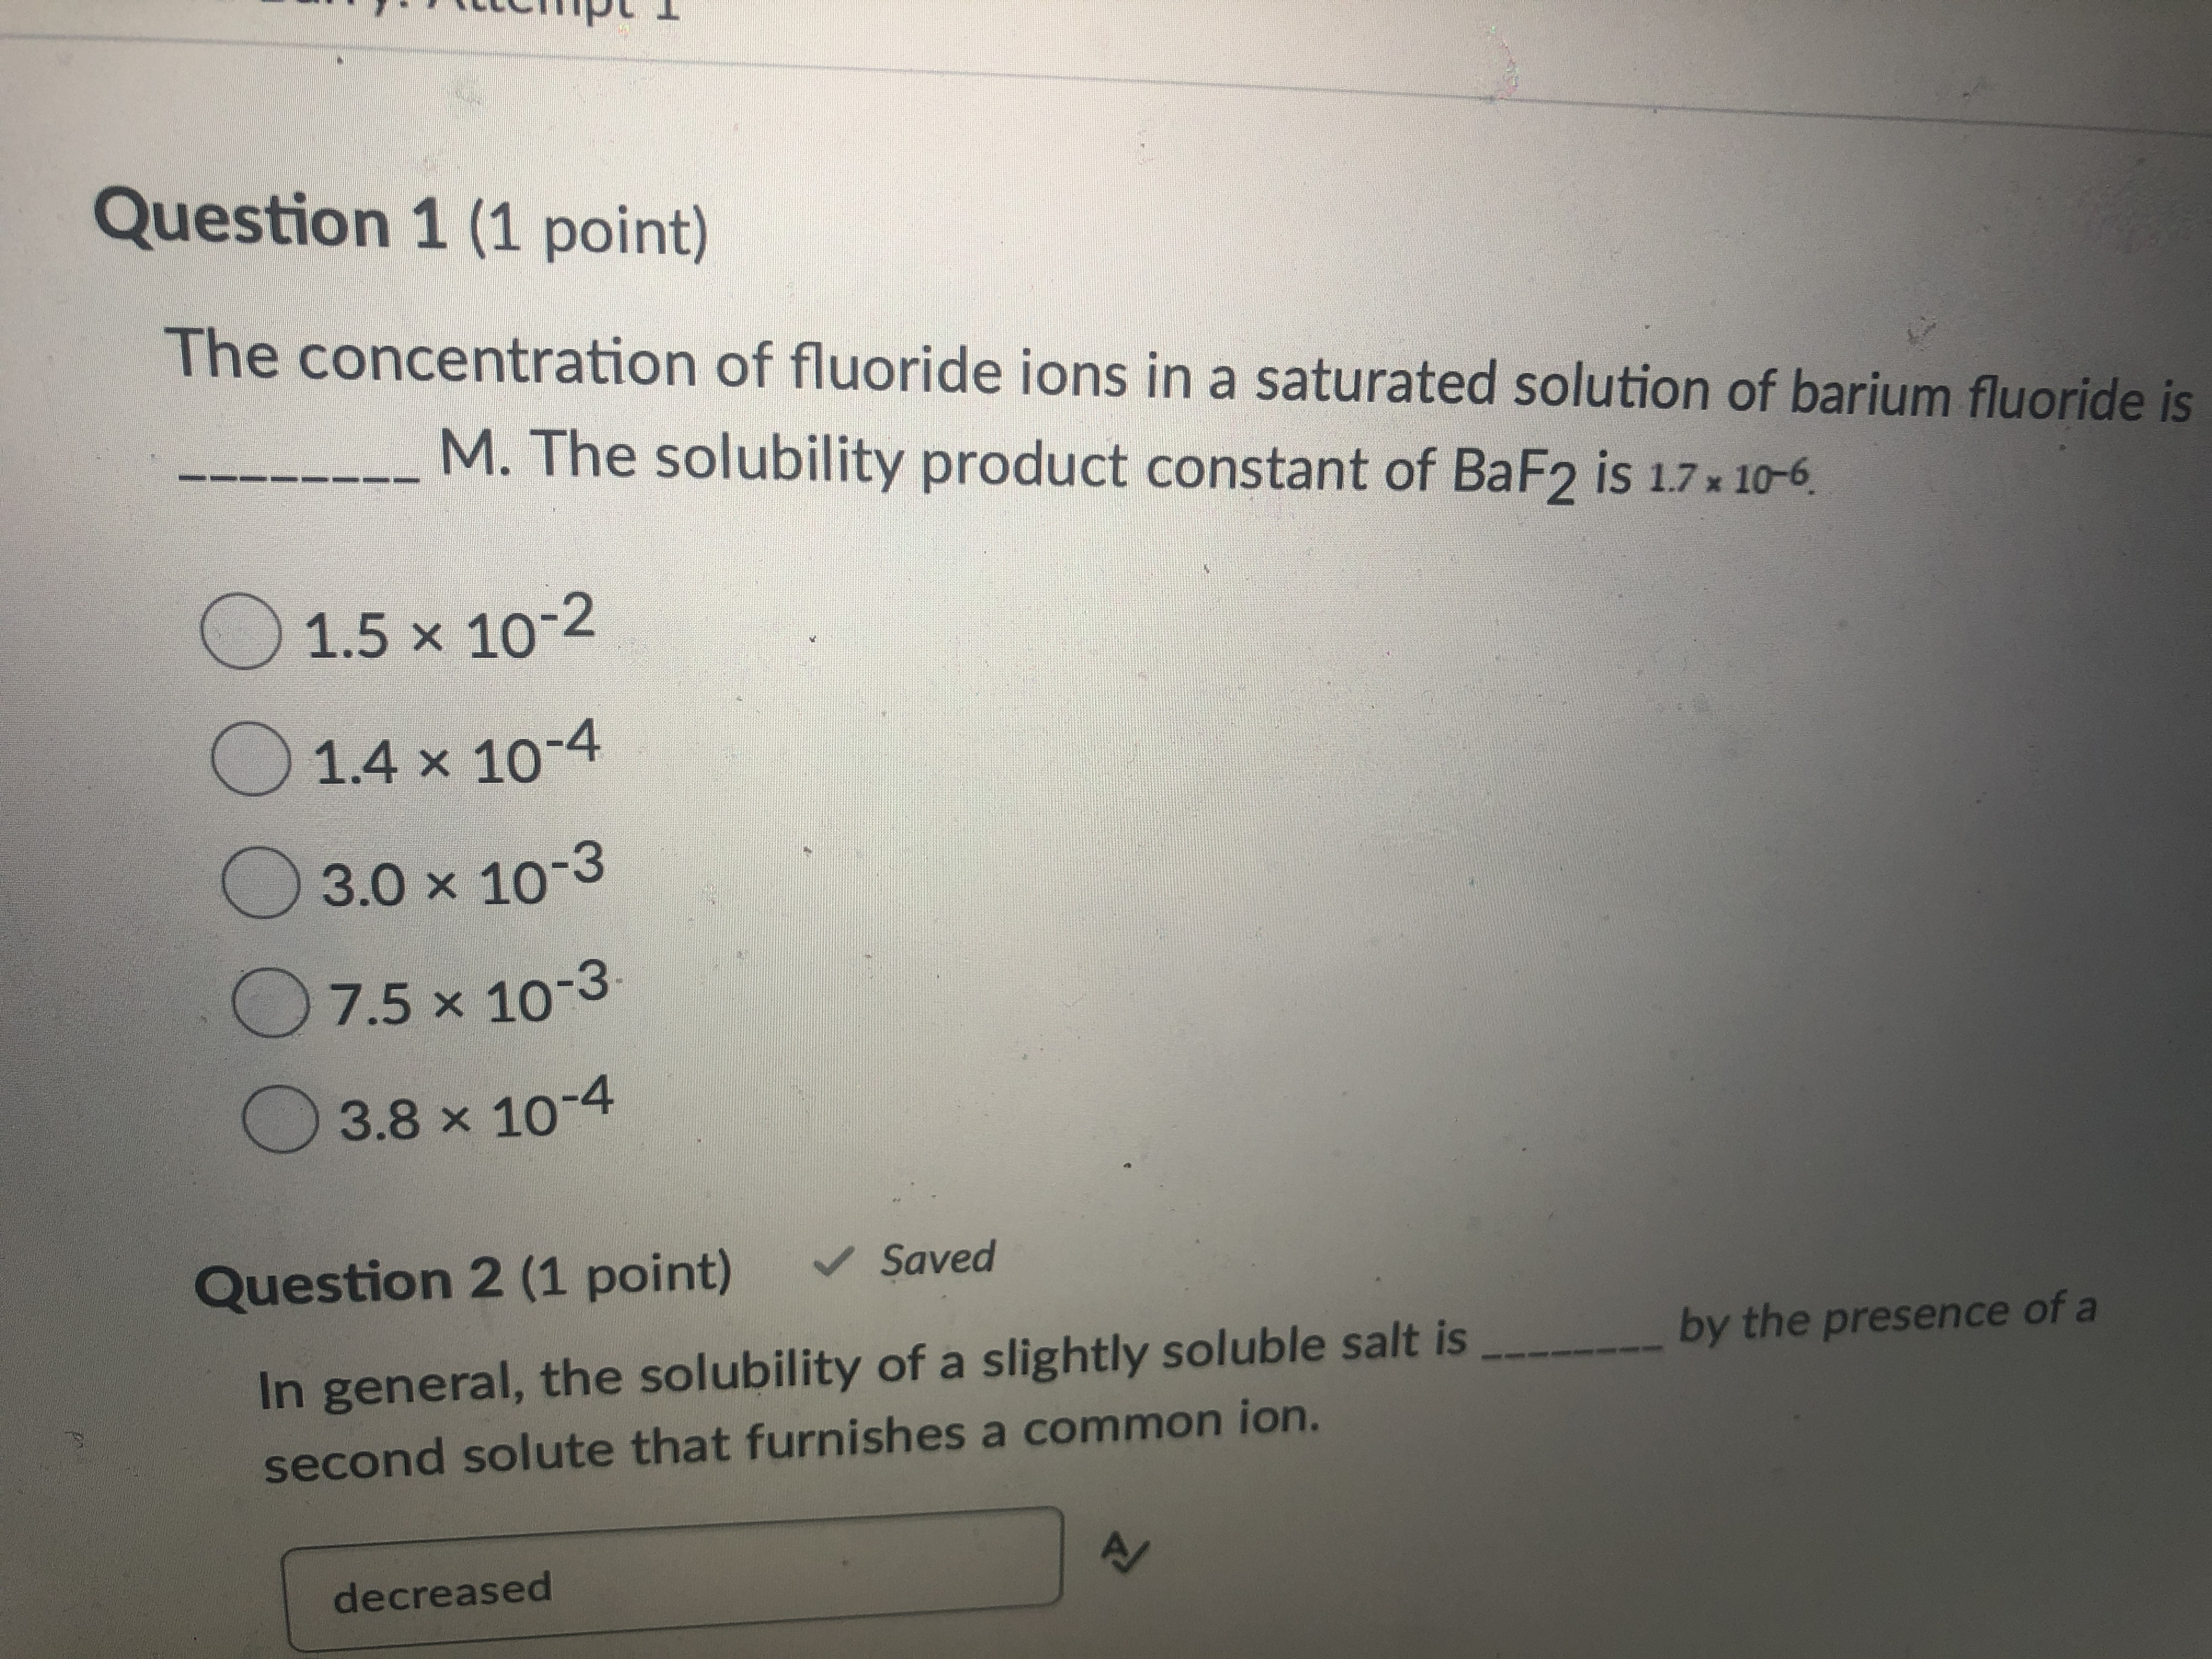 The Concentration Of Fluoride Ions In A Saturated Solution